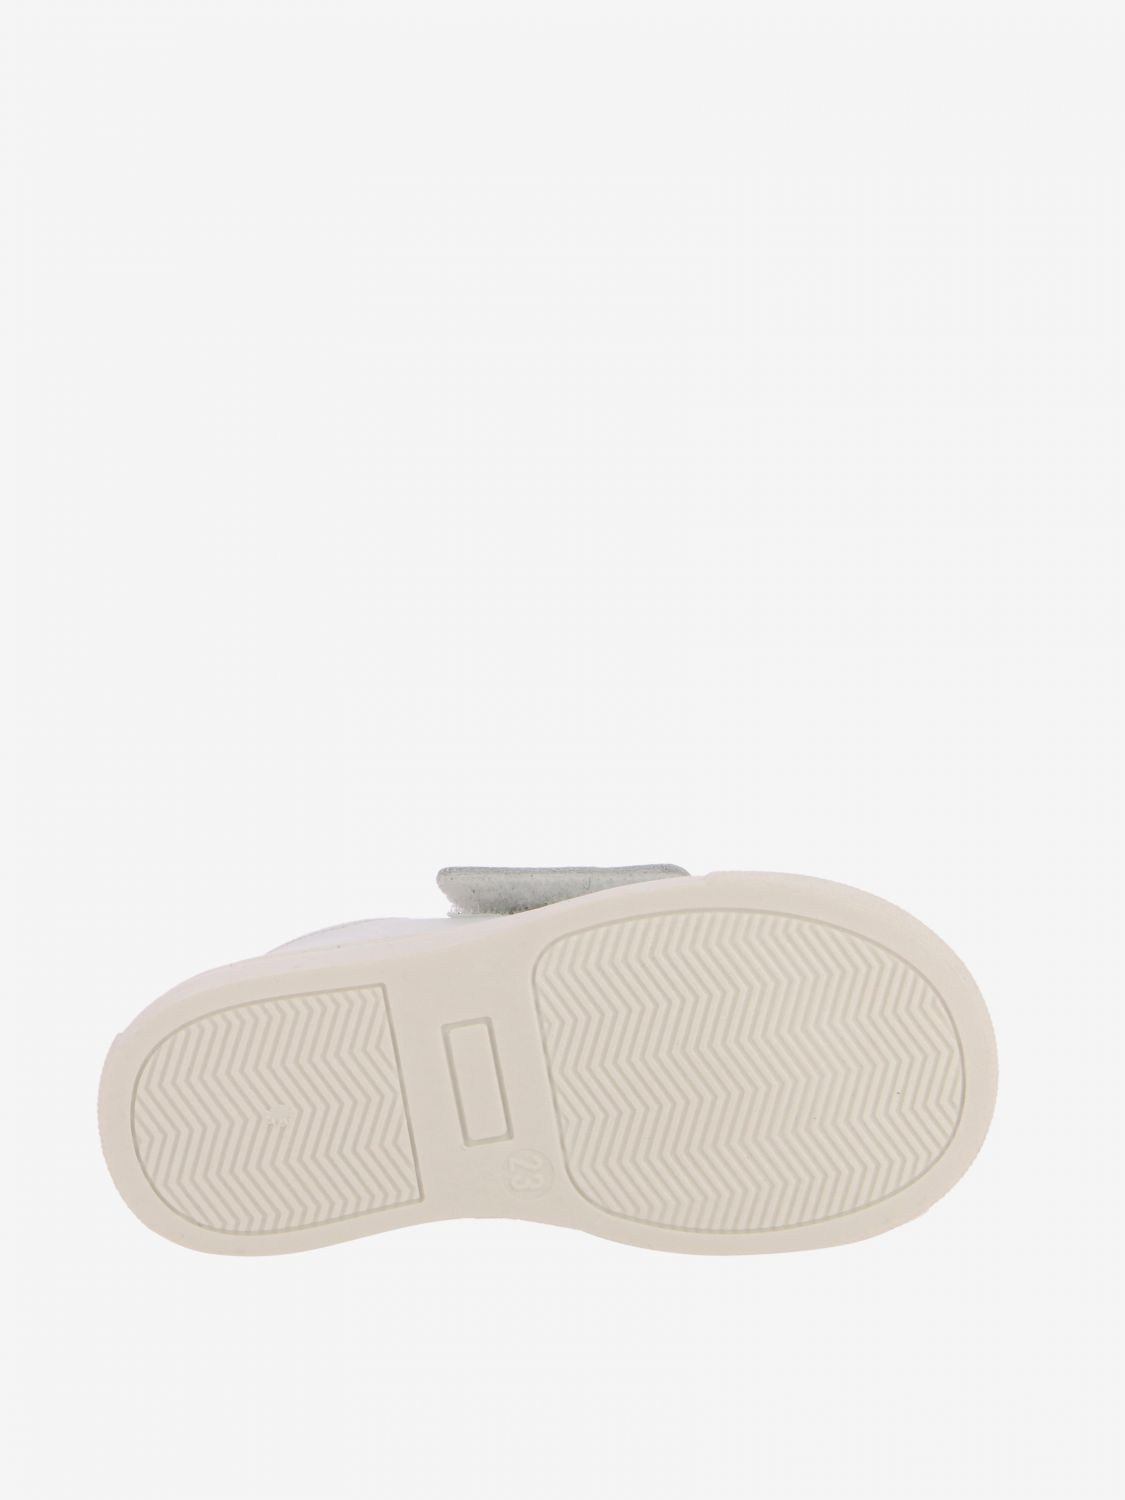 Shoes kids Dsquared2 Junior white 6